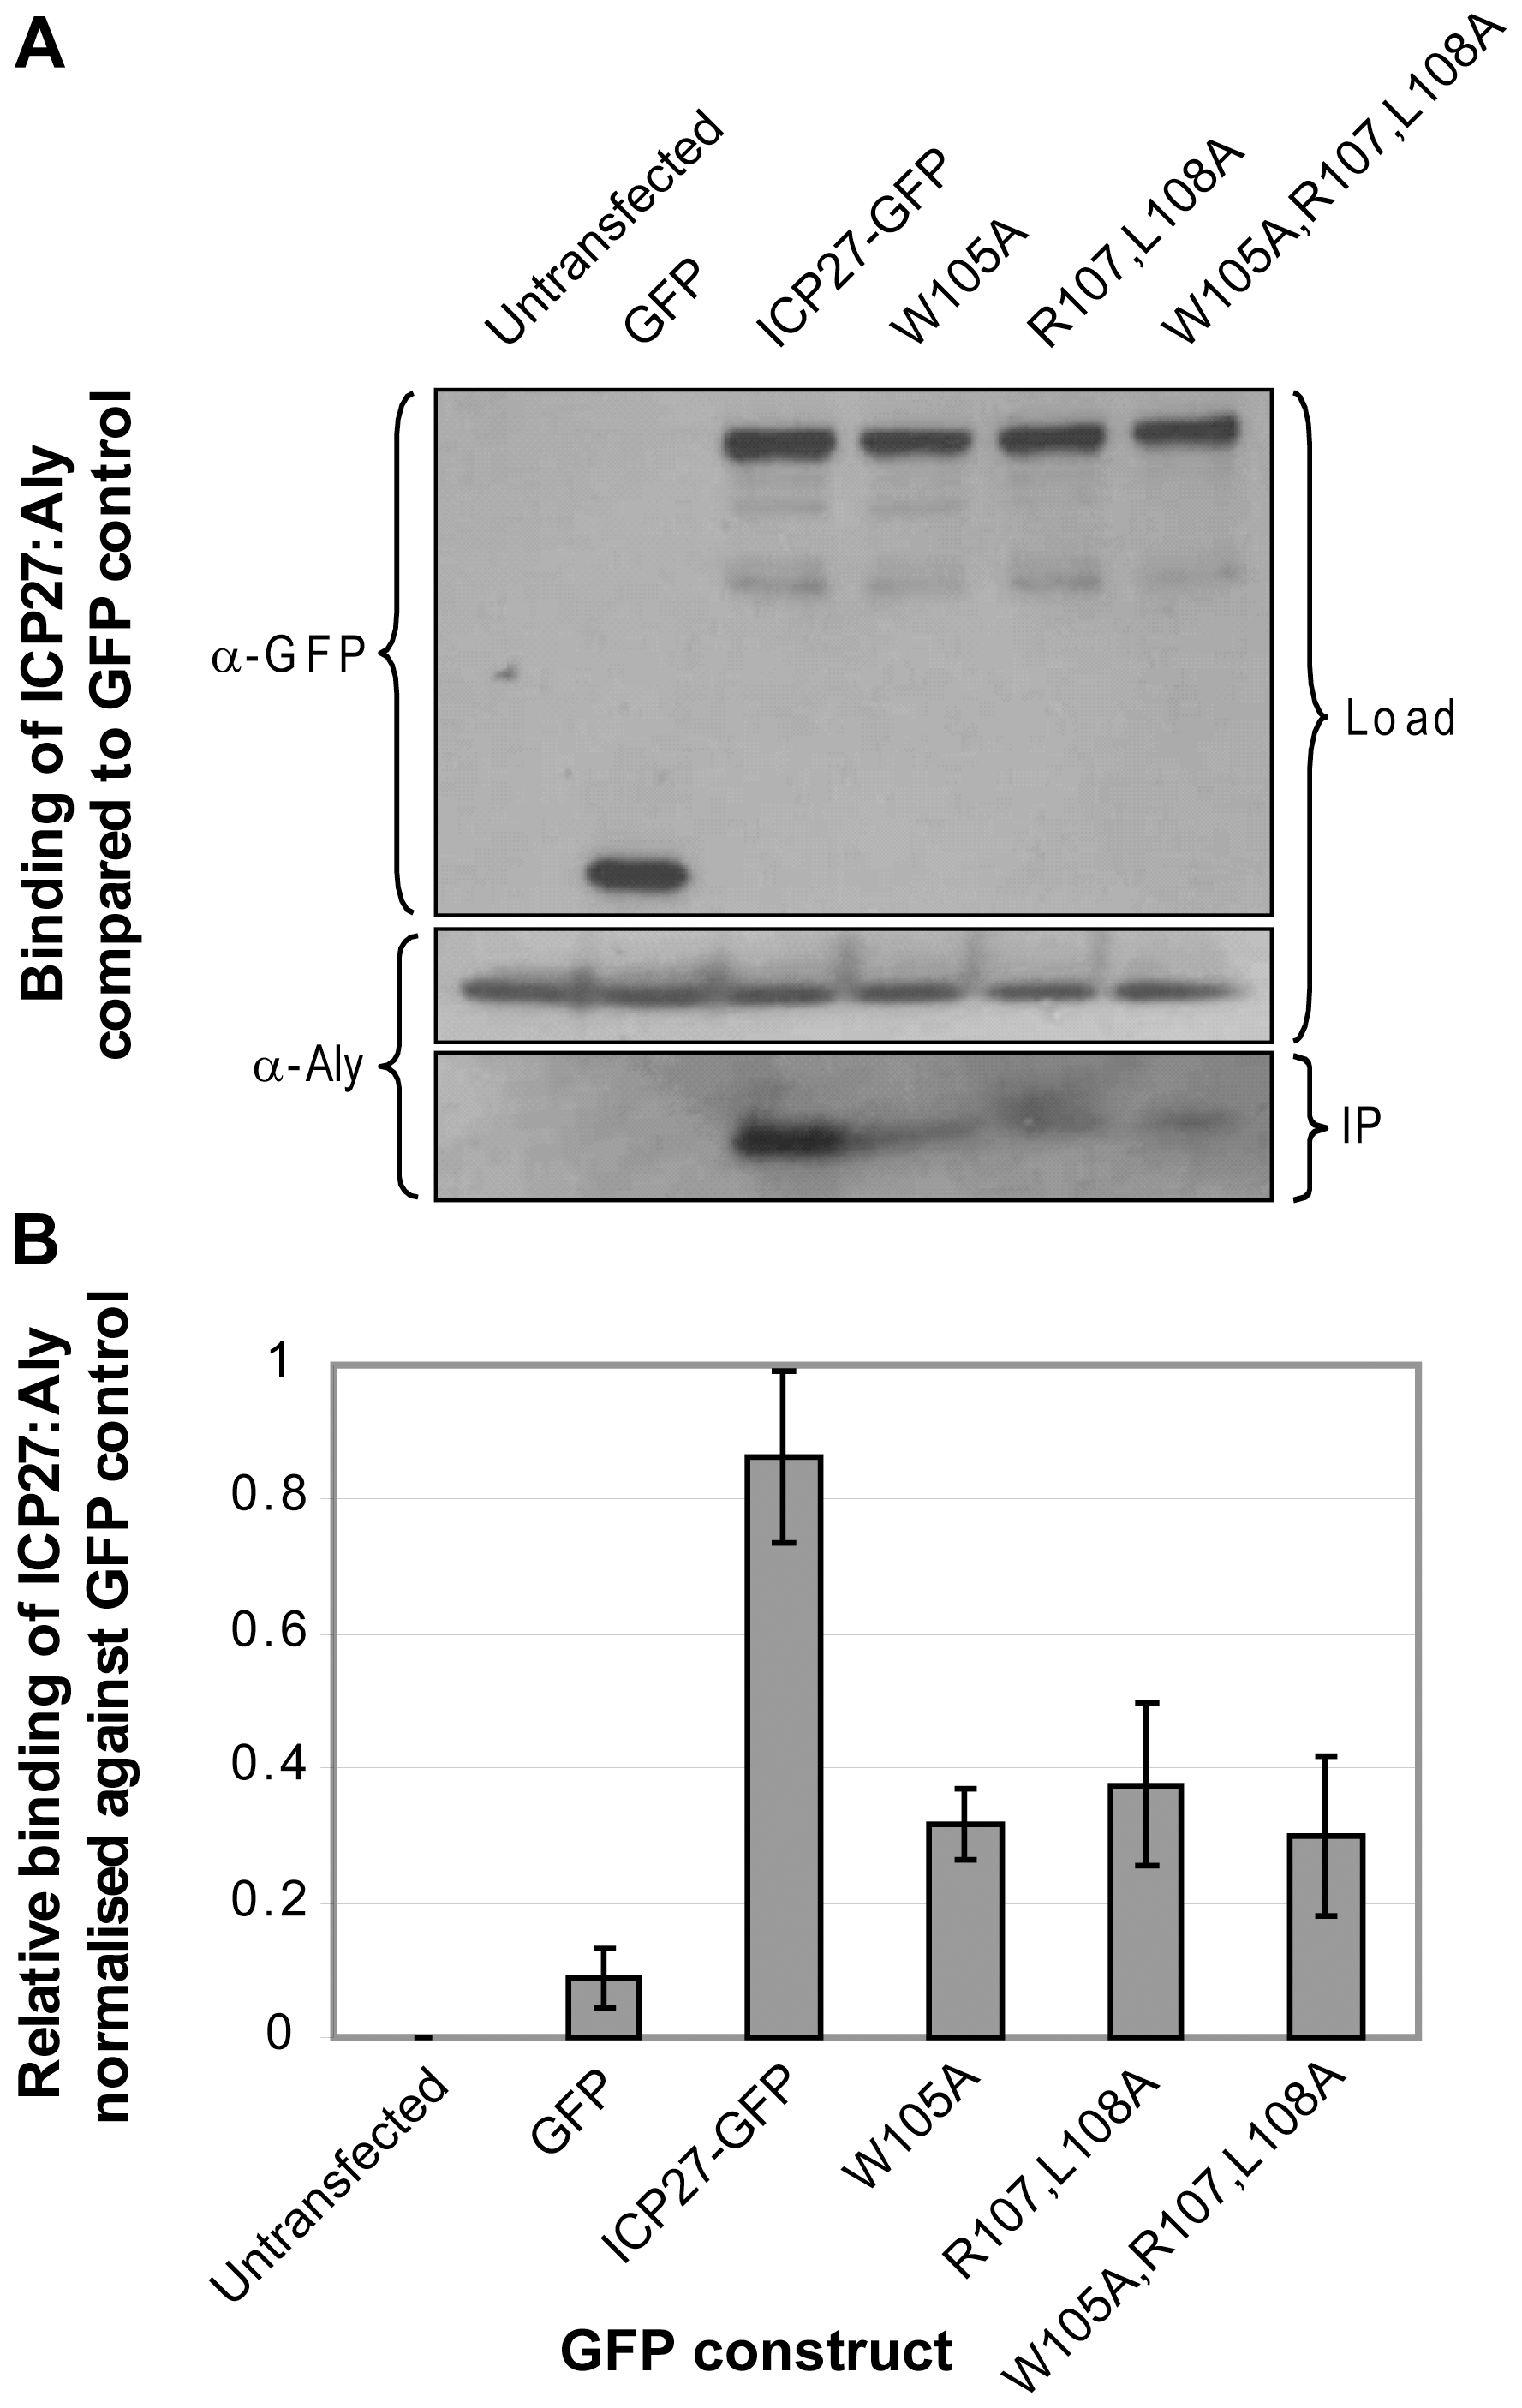 Functional importance of triad residues 105, 107 and 108 for the interaction of ICP27 with human Aly.